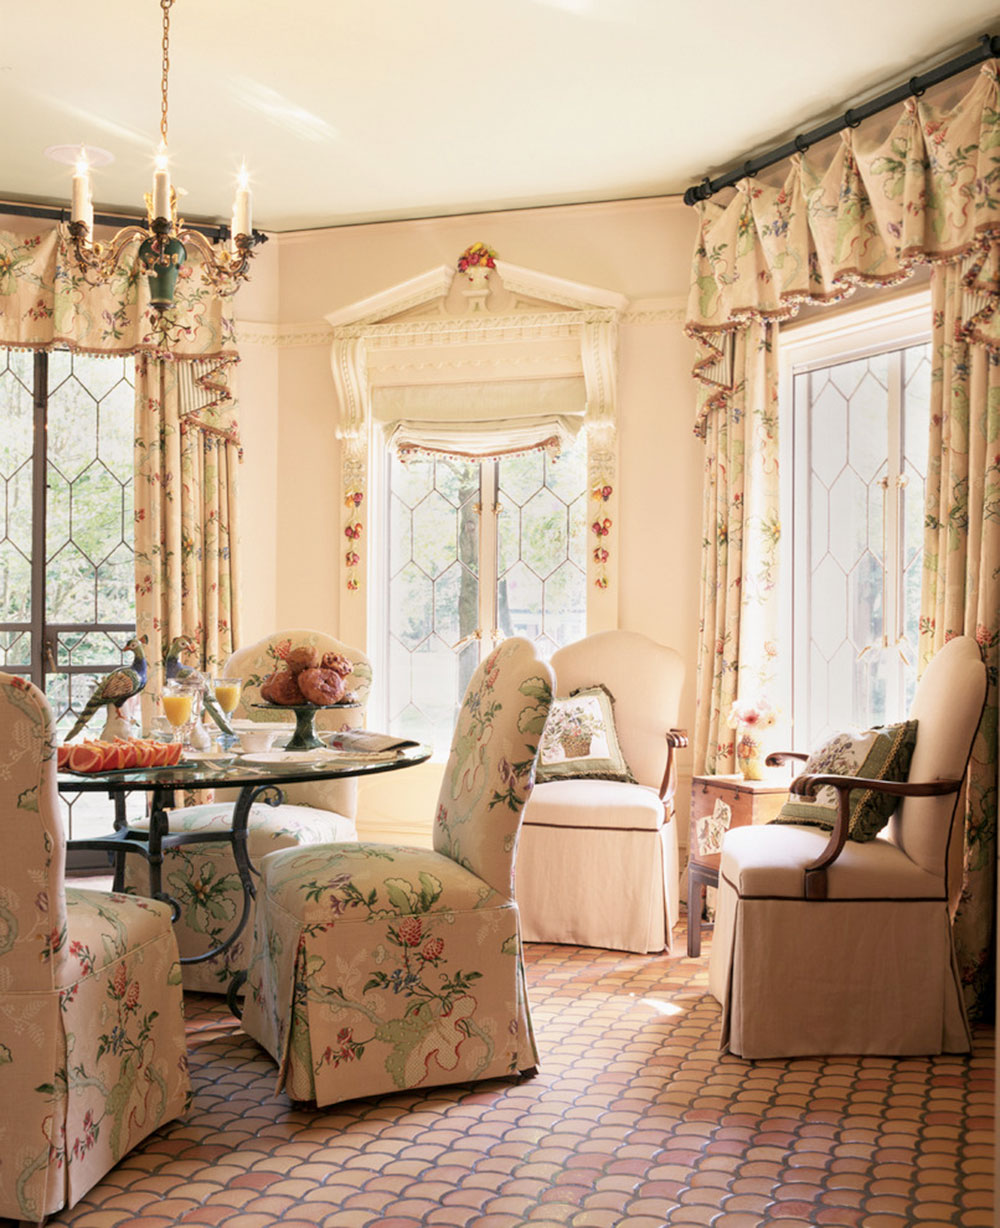 Cottage-Style-Designs-Can-Look-Great4 Cottage-Style Designs can look great